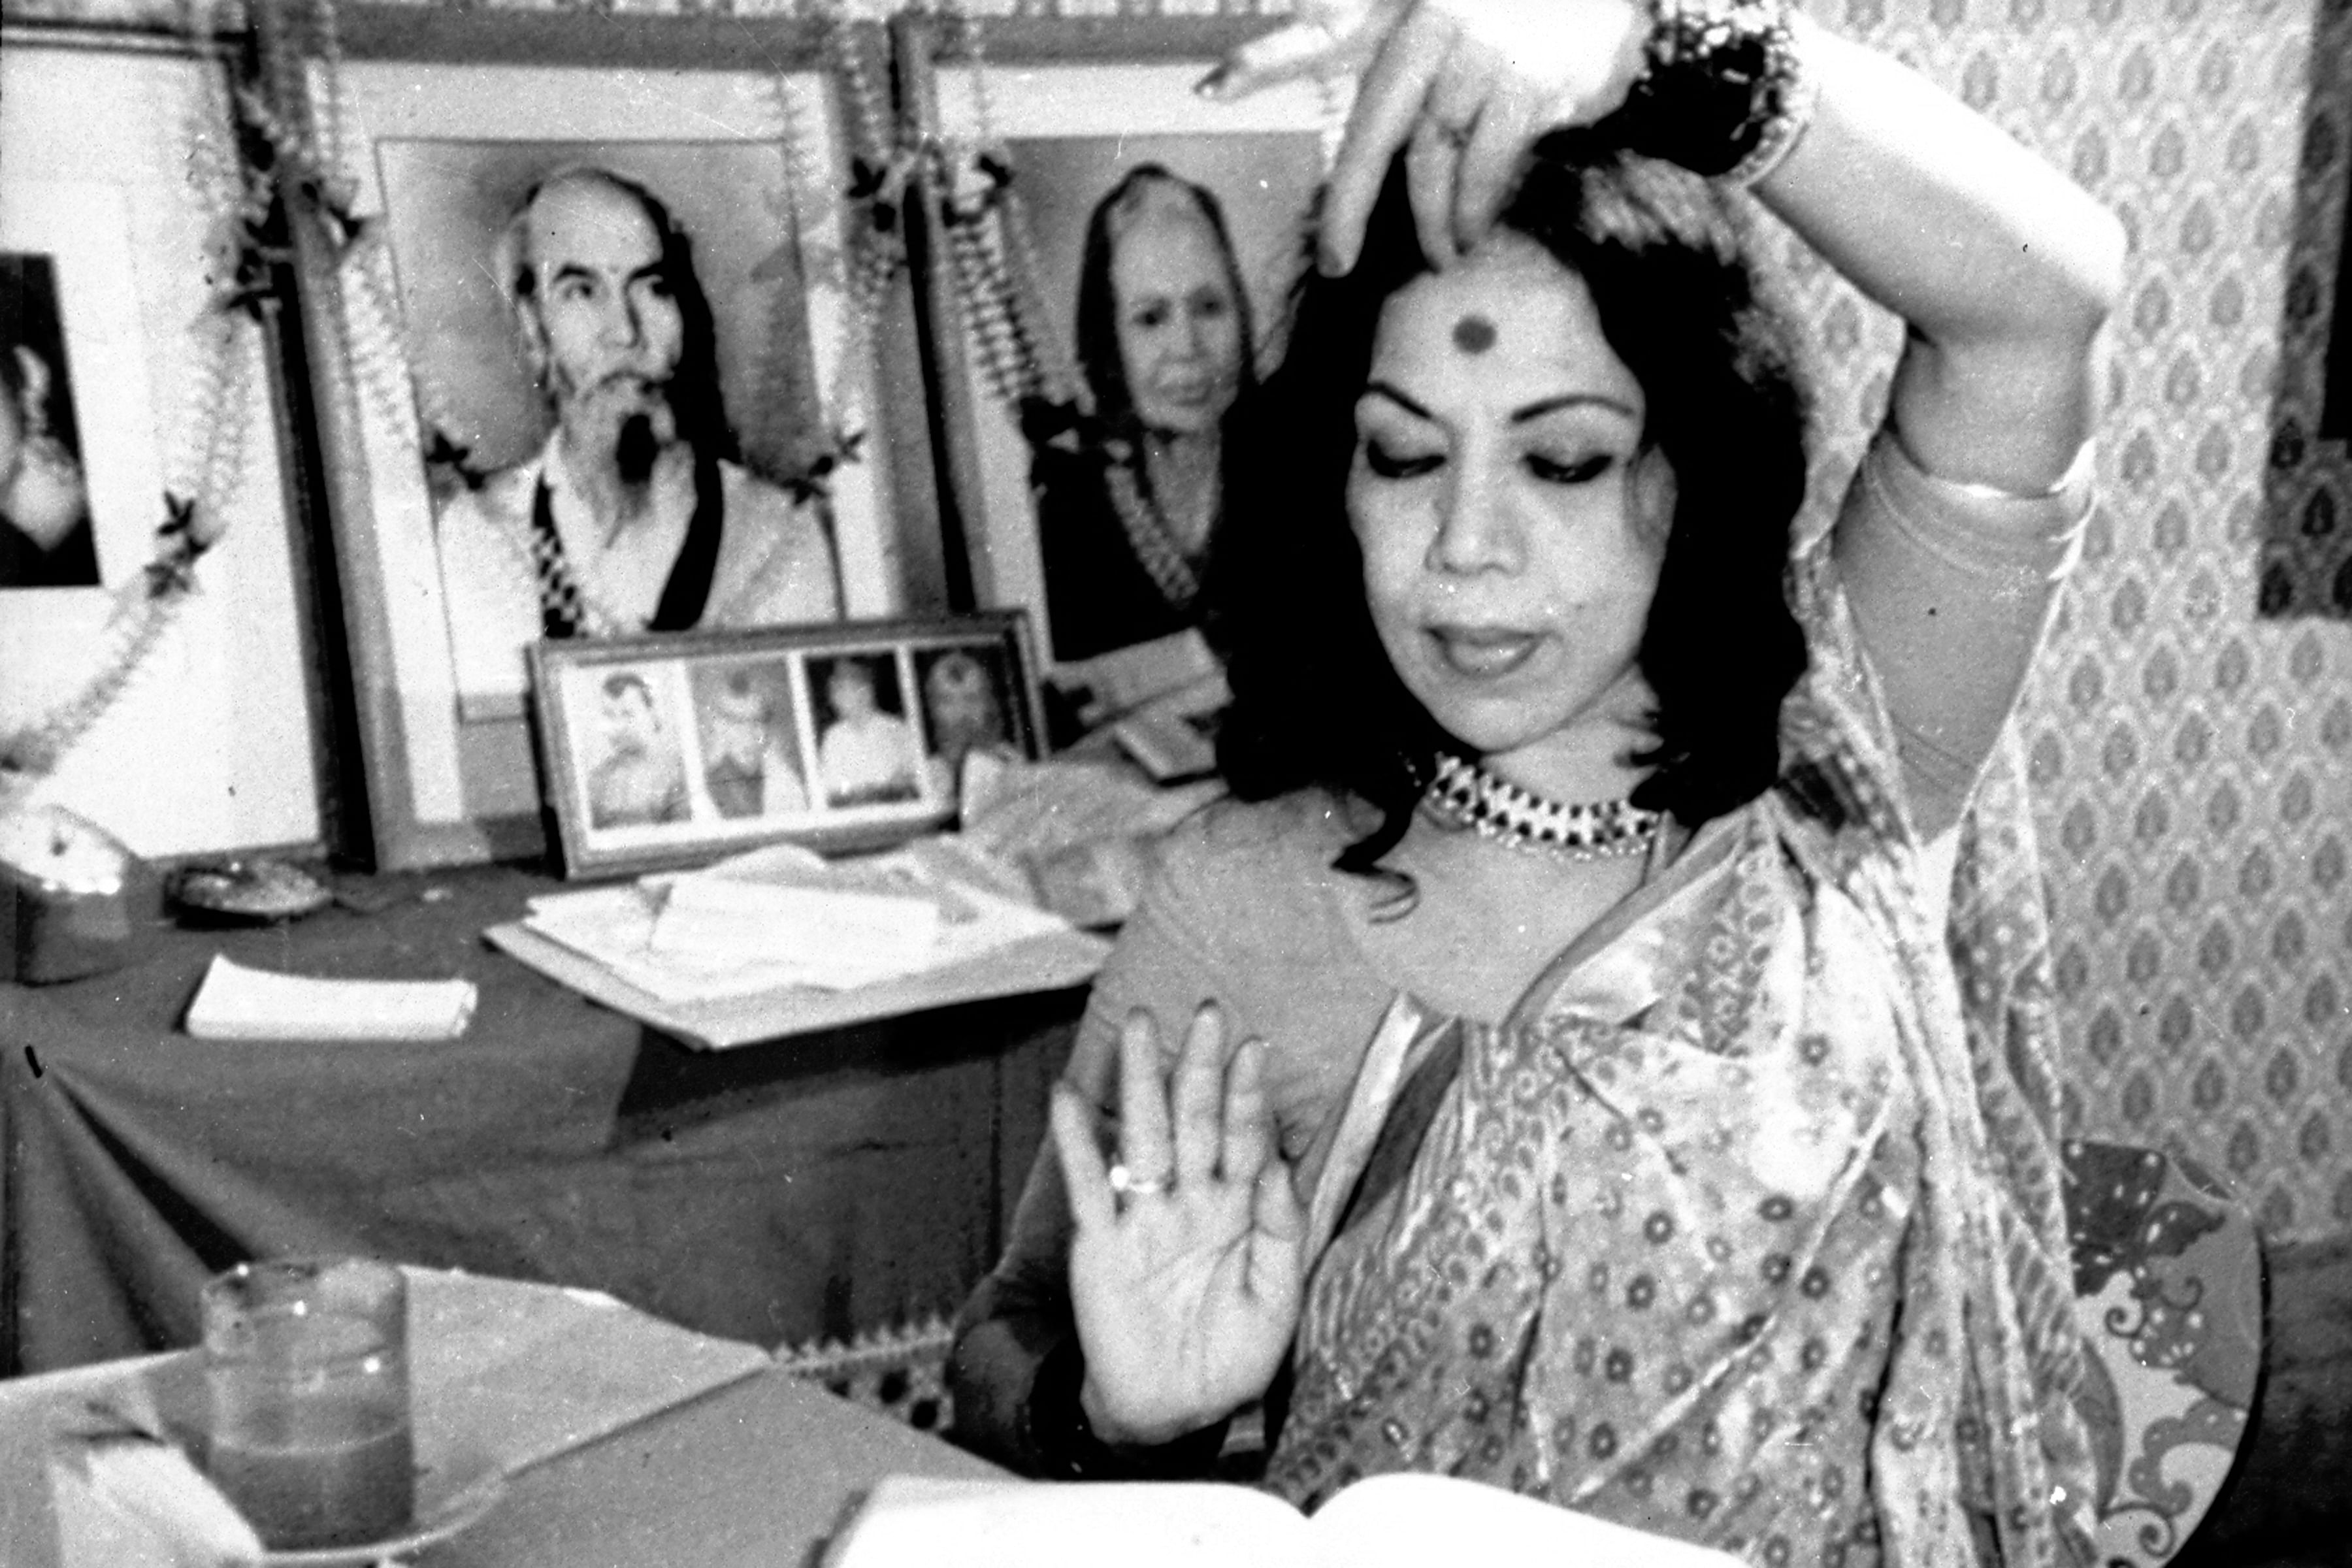 Although Sitaraji is no longer with us her legacy, the fragrance of the ethos and free spirit of the 'ang' and the 'andaz' (style) of the Benaras gharana lives on.